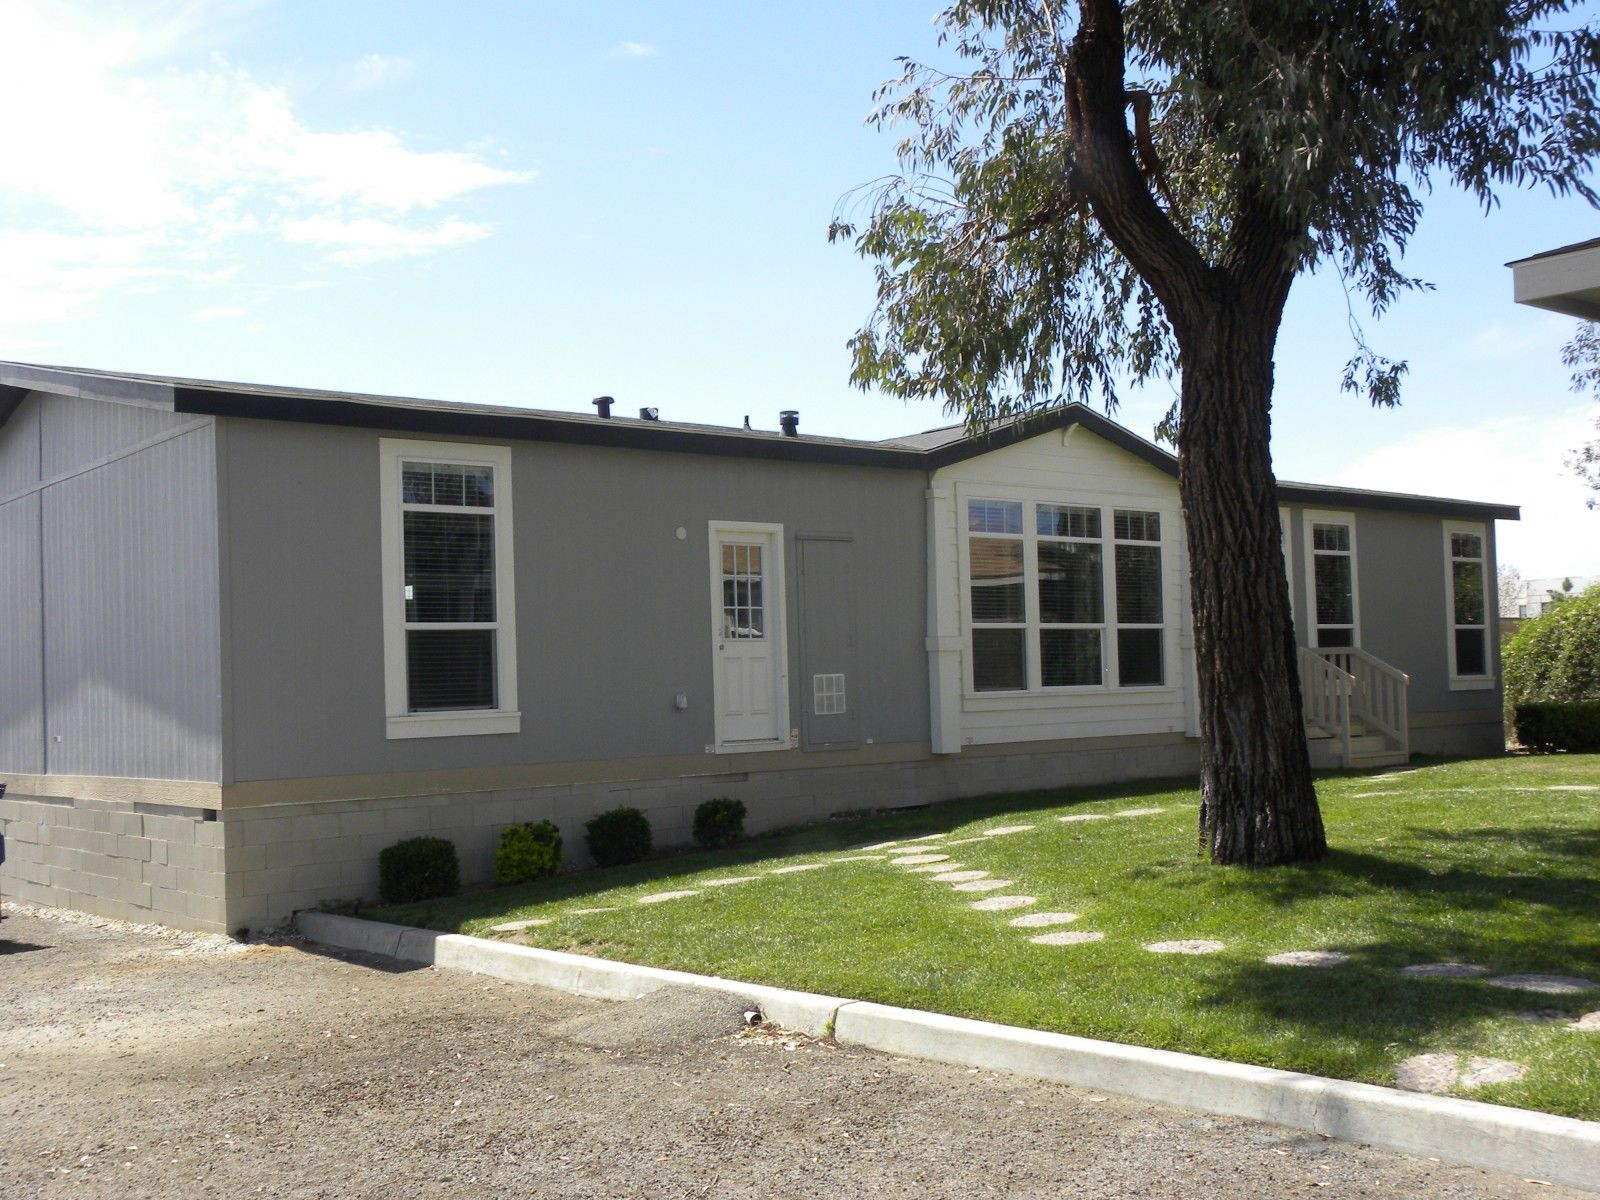 GLE641G 3 bed / 2 bath / 1920 sqft affordable home for $102900 ... on apartments in perris ca, church in perris ca, weather in perris ca, streets in perris ca, printing in perris ca, schools in perris ca,